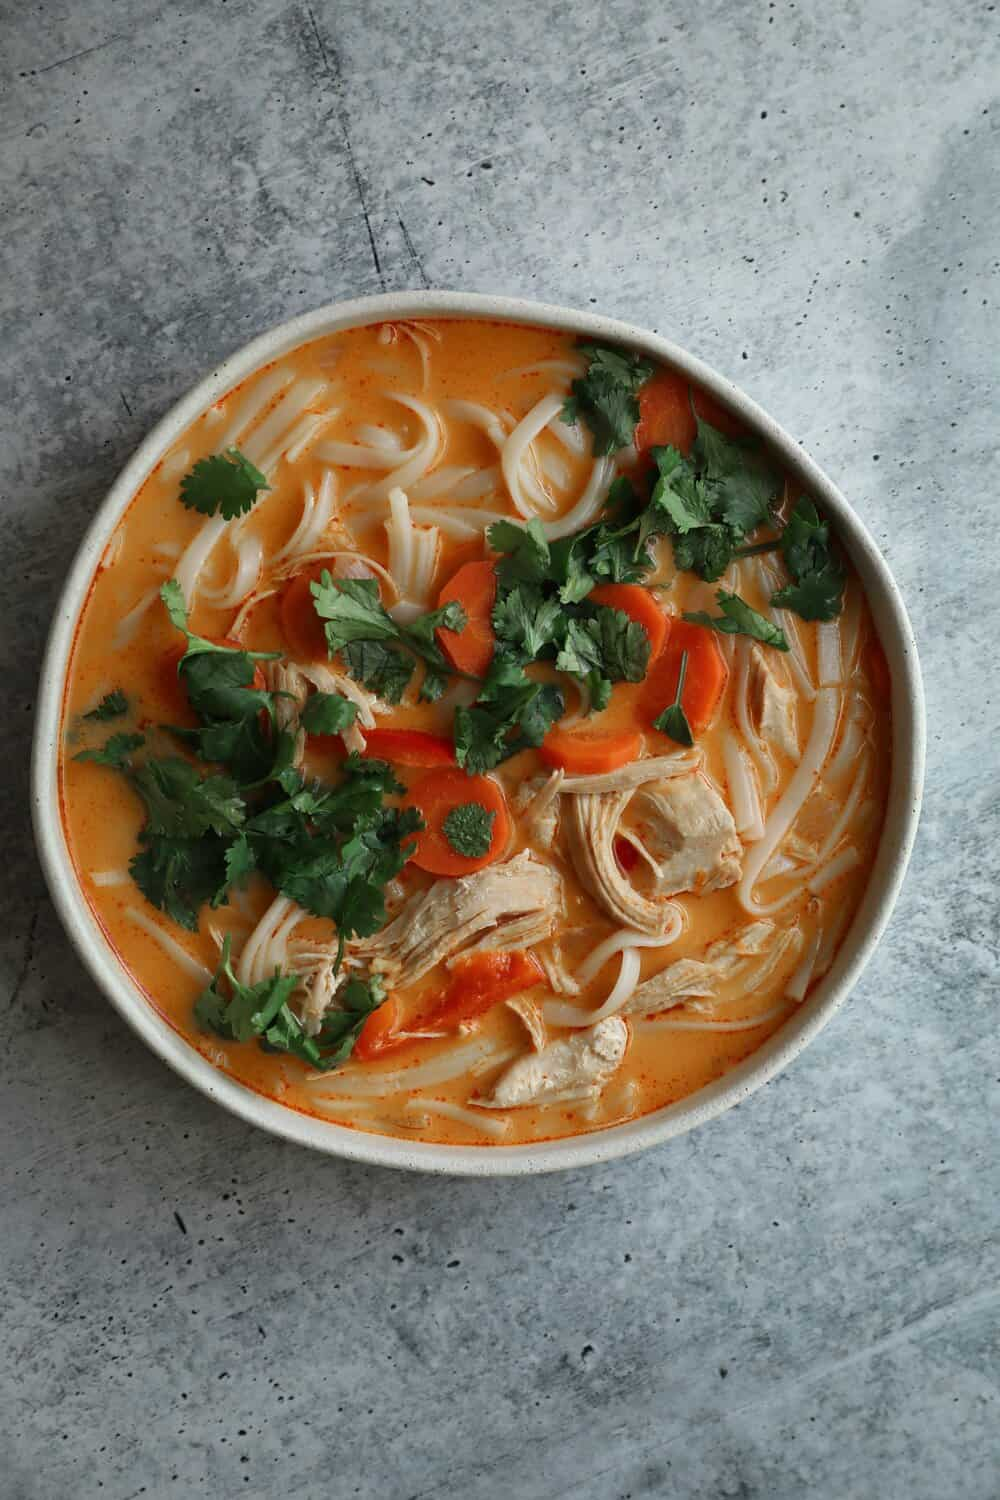 THAI CHICKEN NOODLE SOUP - INGREDIENTS1.5 lbs skinless chicken breast, cubed3 tb coconut oil1 can full fat coconut milk1 8 oz package rice noodles6 cups chicken broth3 tb red curry paste4 cloves garlic, mashed1 onion, diced3 carrots, sliced into coins2 red bell peppers, thinly sliced1 tb ground ginger1 tsp cumin1 bunch cilantro, roughly choppedSalt and pepper to taste